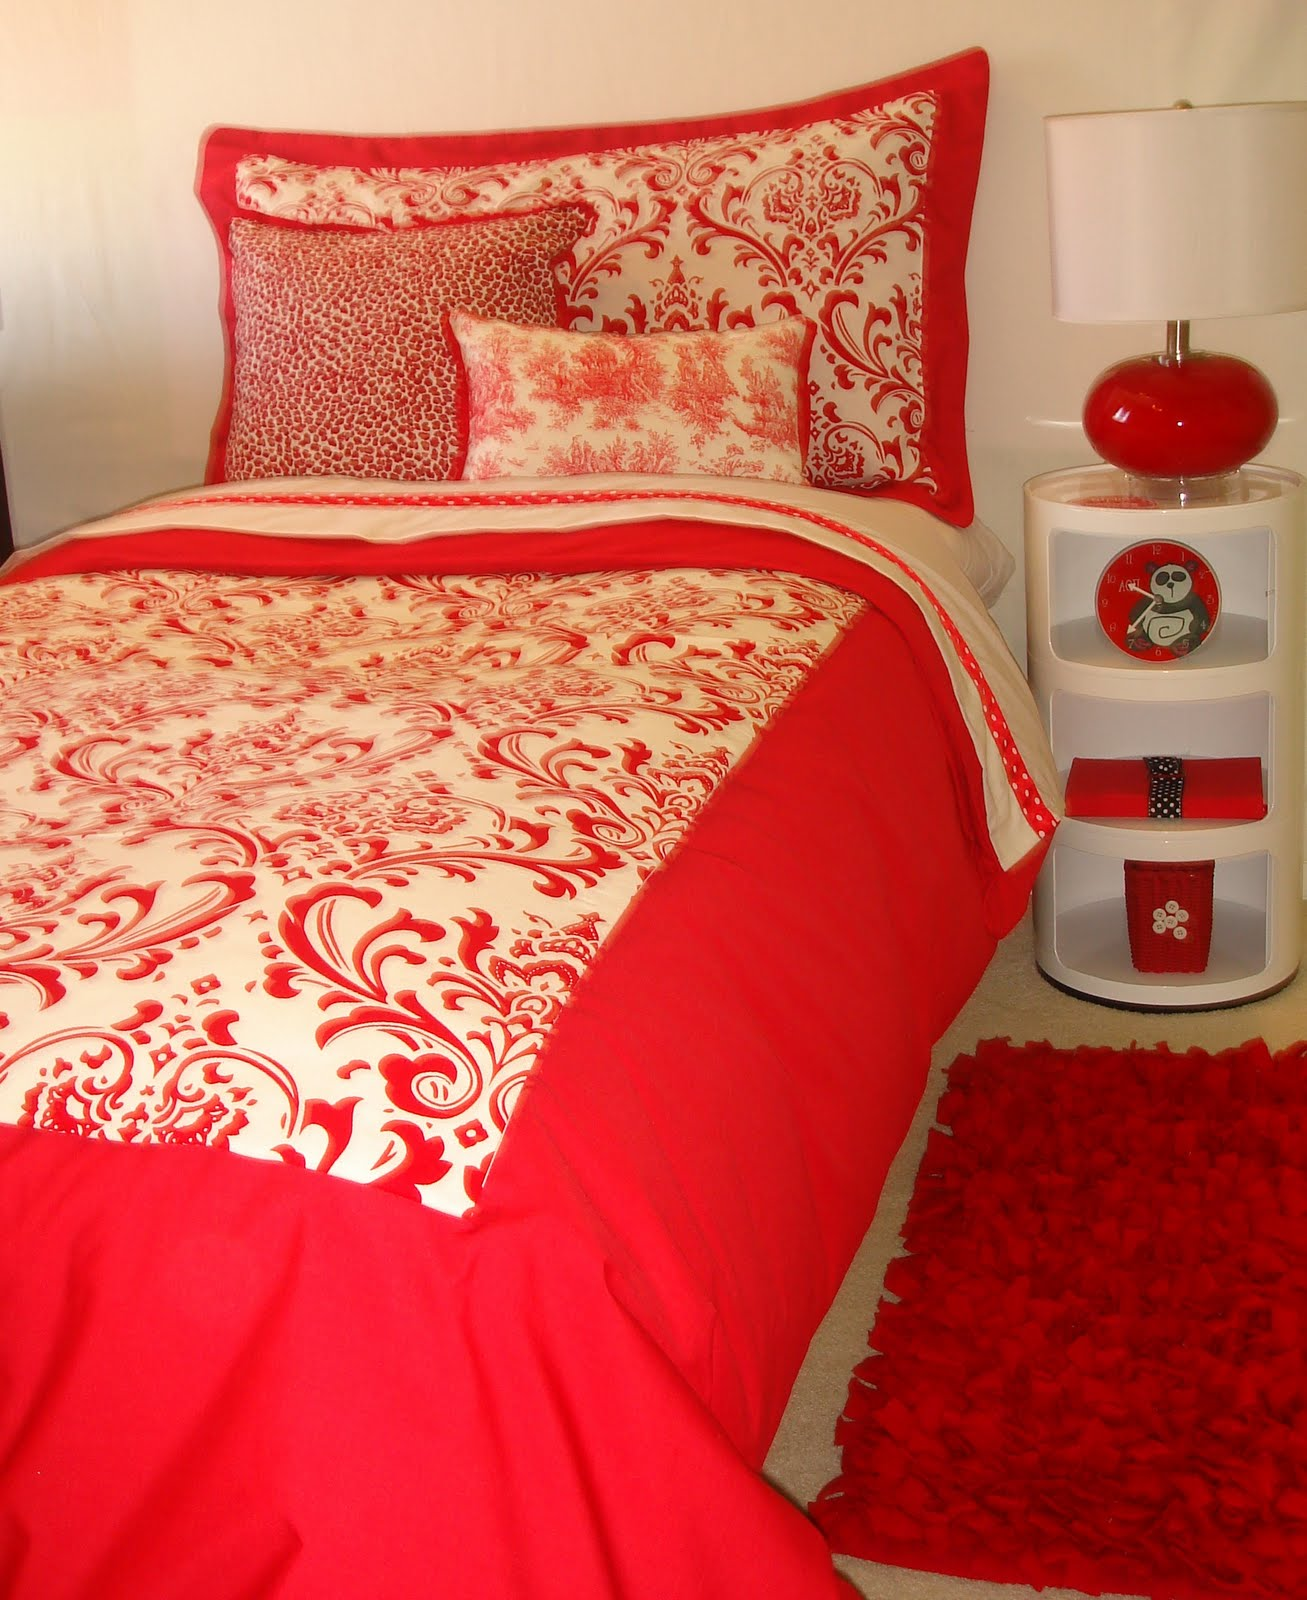 Decor 2 ur door dorm bedding ideas dorm room bedding - Dorm room bedding ideas ...